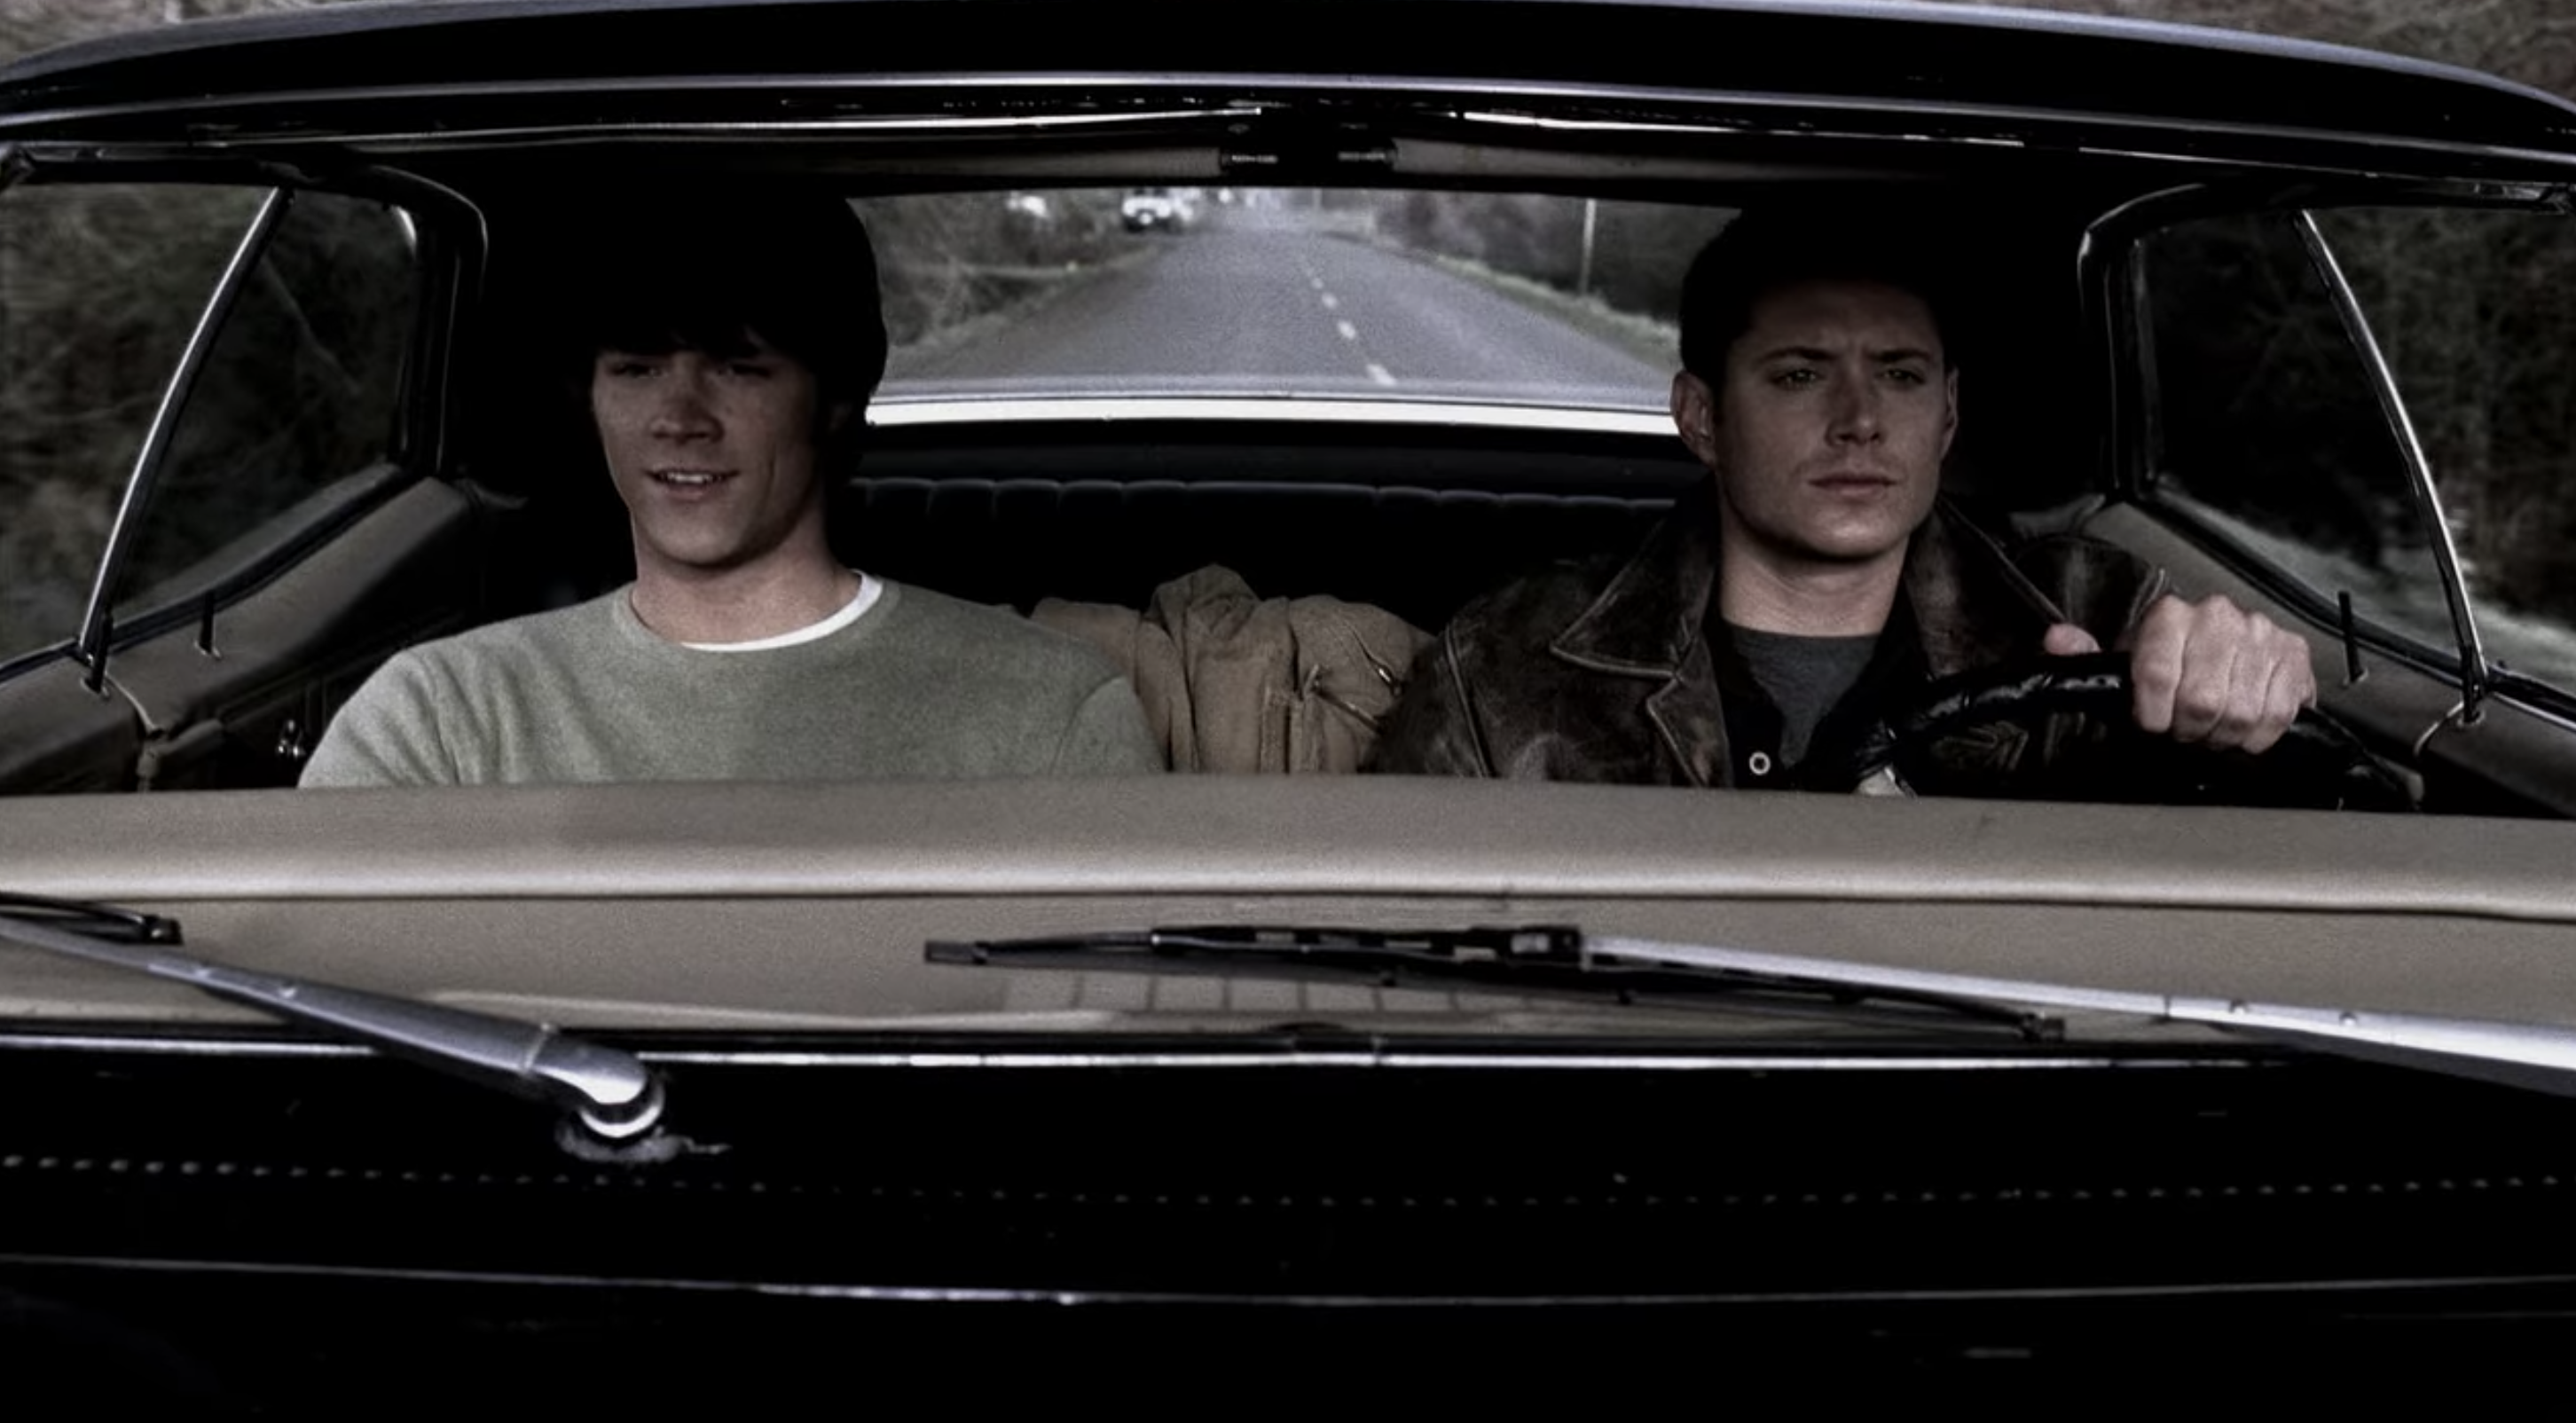 Sam and Dean driving